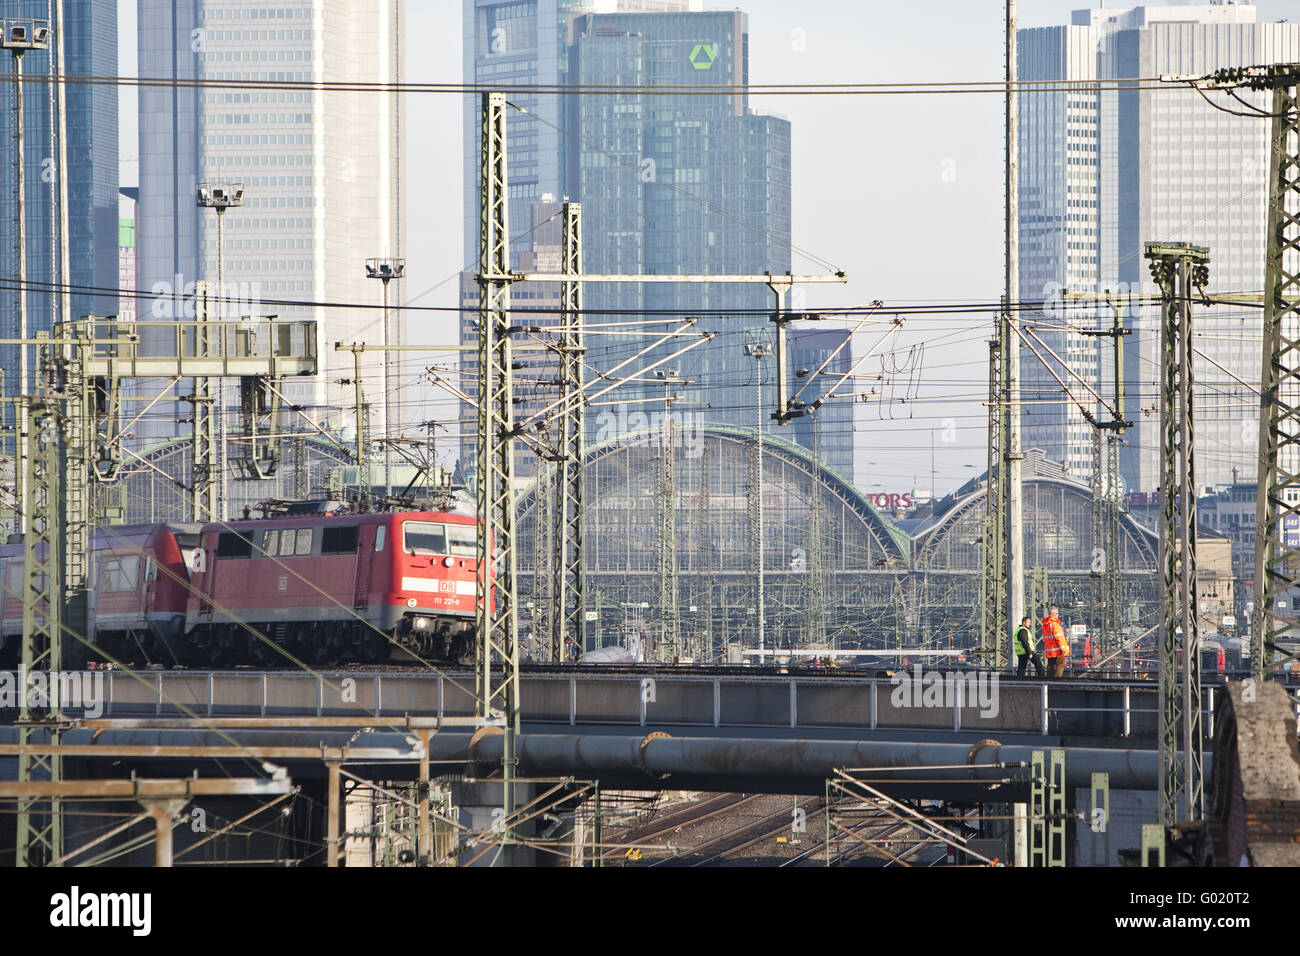 Frankfurt main station with a moving train of the German Federal Railways - Stock Image